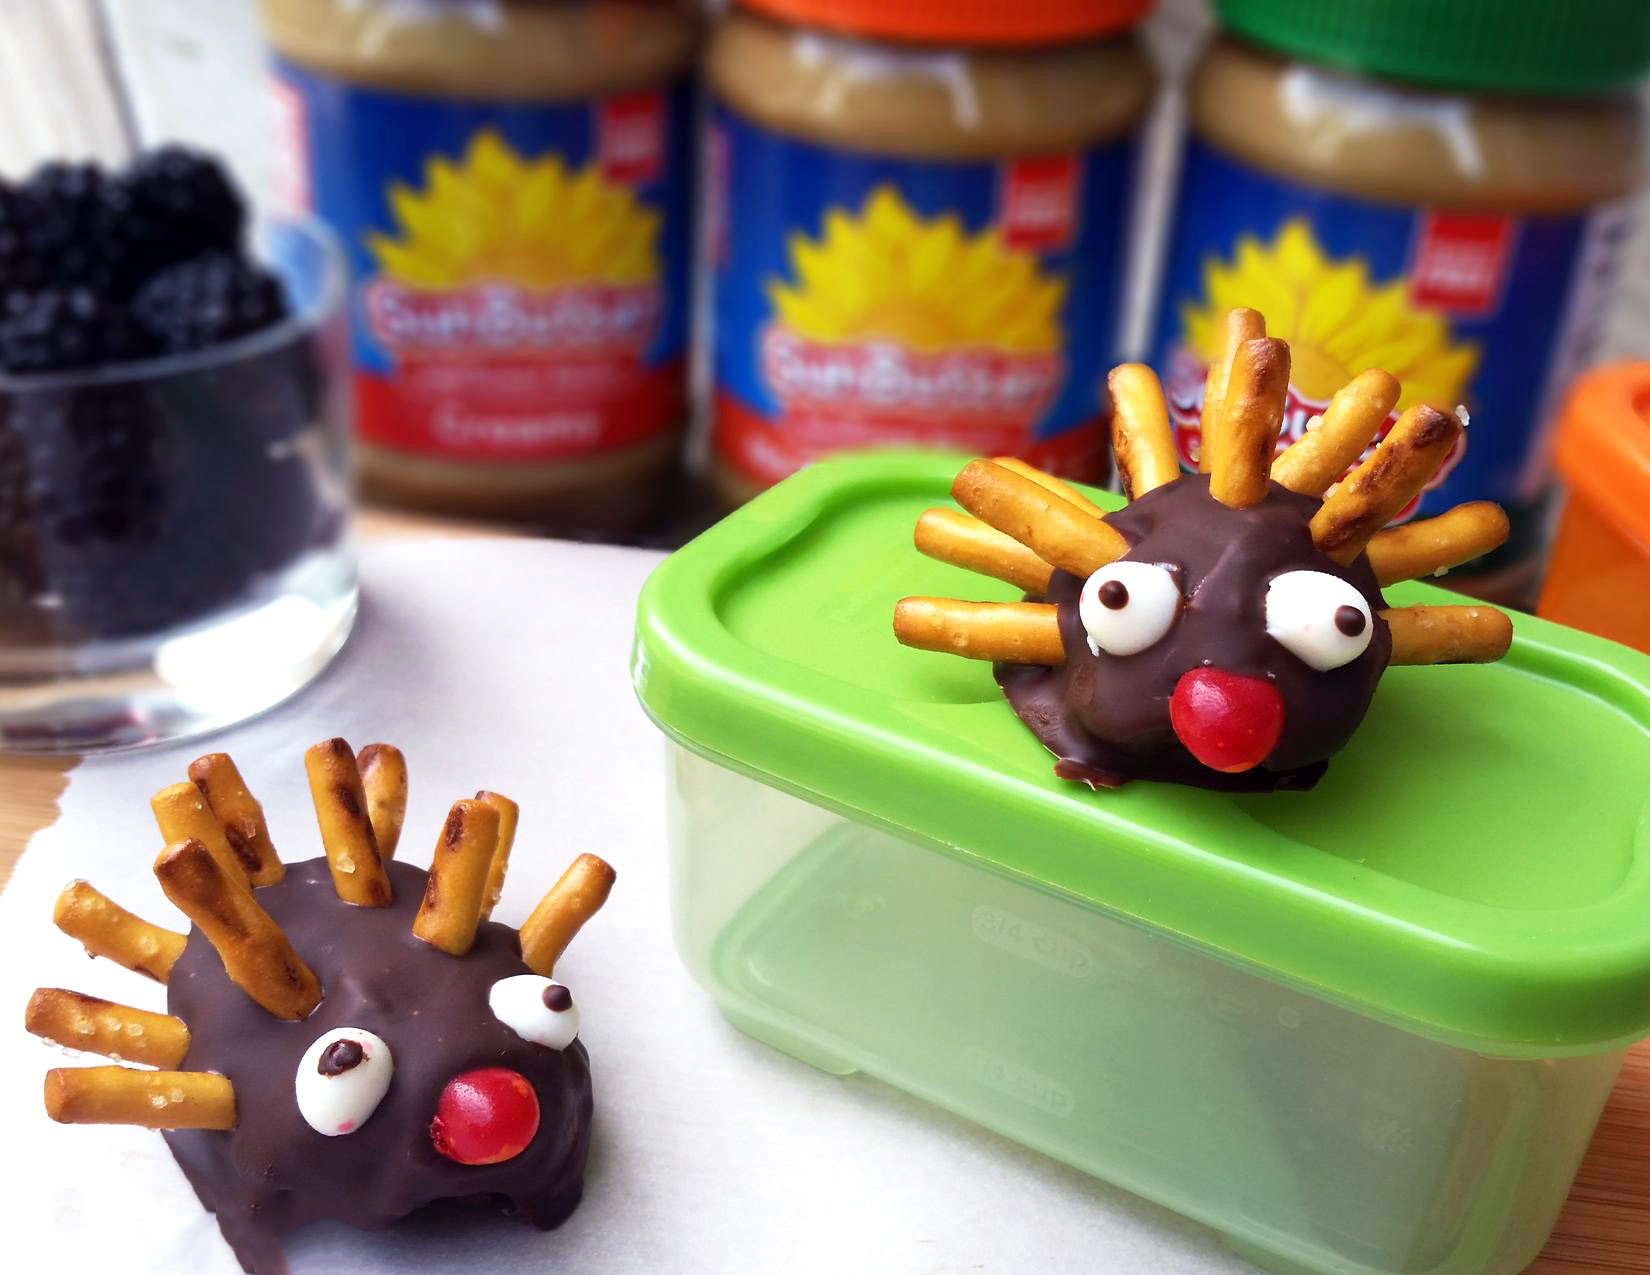 From Guest Contributor Tracy Bush, this adorable recipe fits perfectly into lunch boxes or can be made as a fun treat for any time of the day. Go on, let the kid in you come out and play!